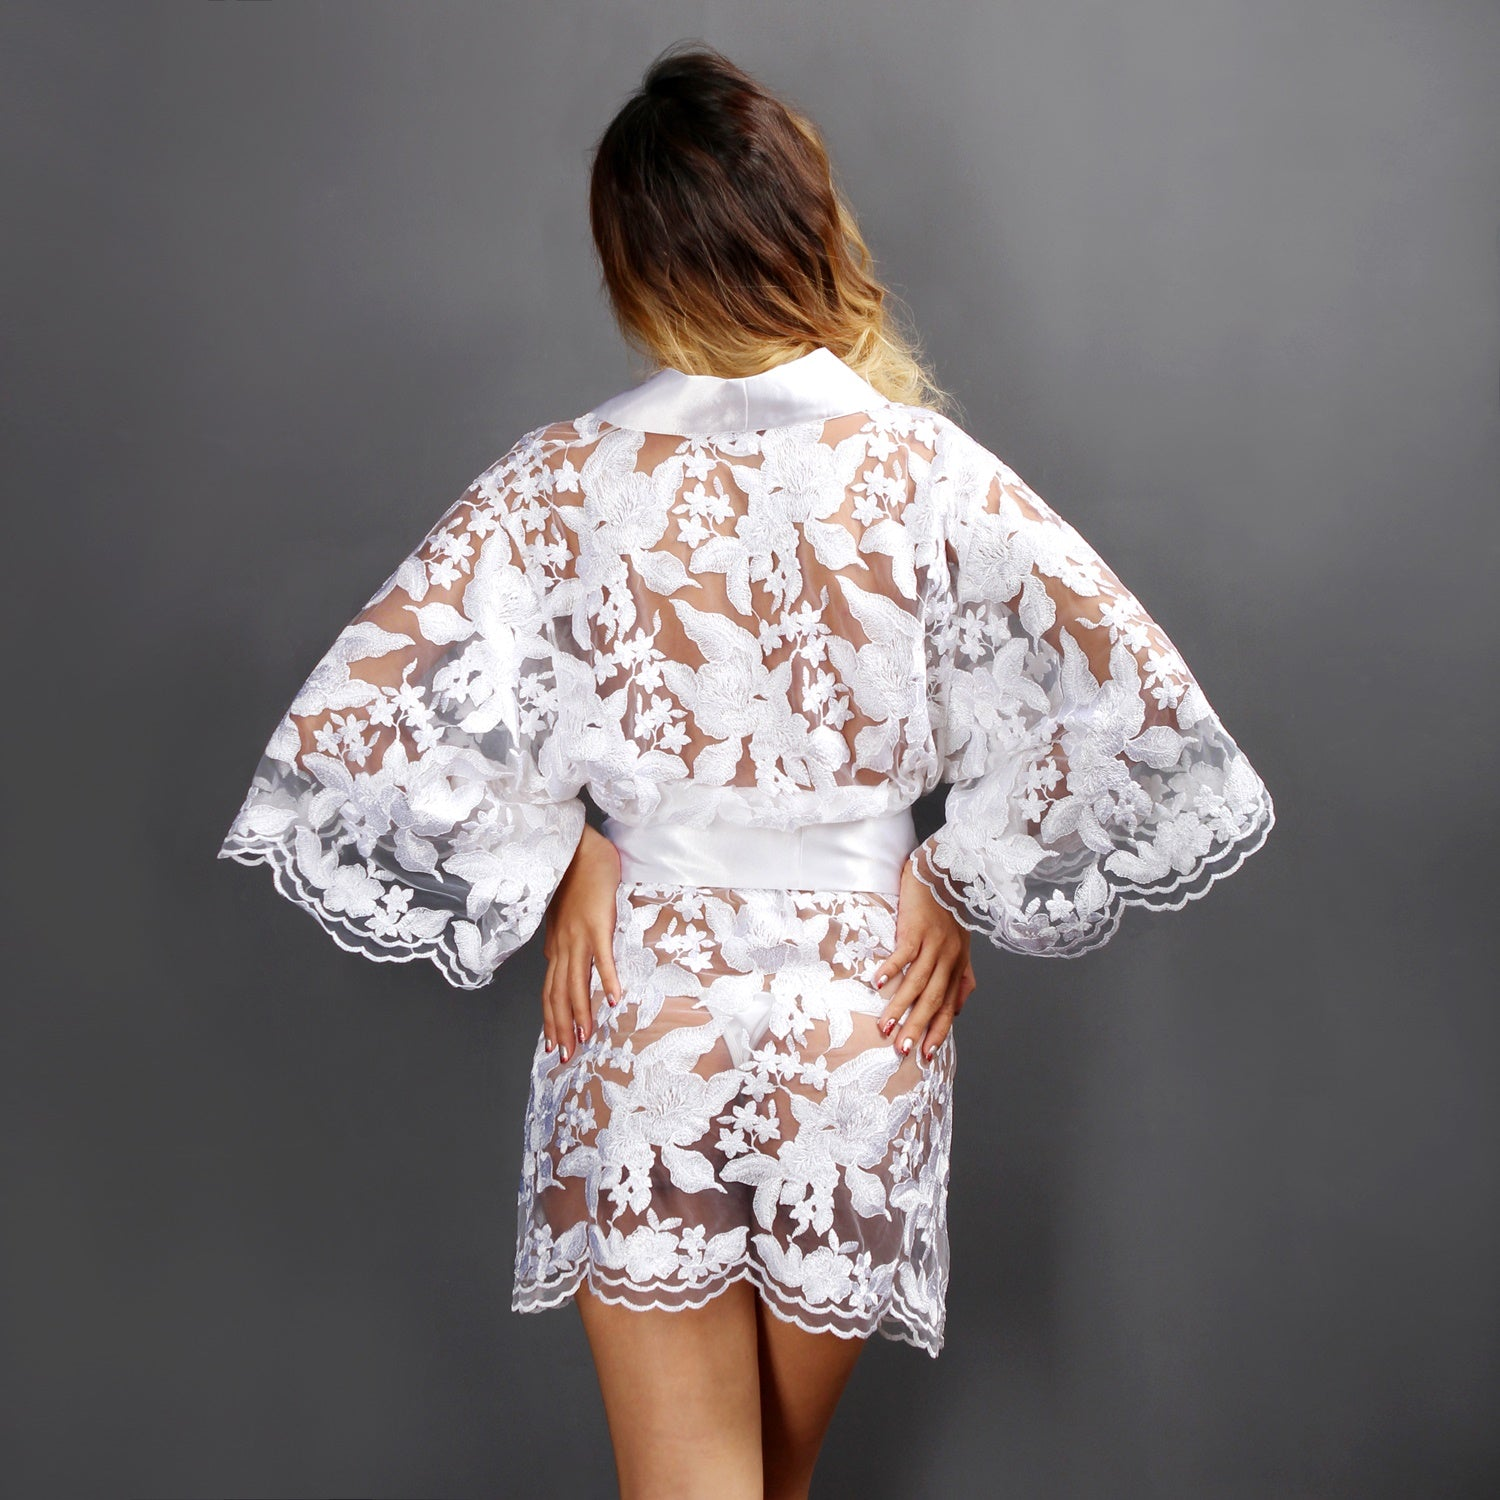 Sheer Lingerie White Lace Bridal Lingerie Dressing gown Kimono See through Lounge wear